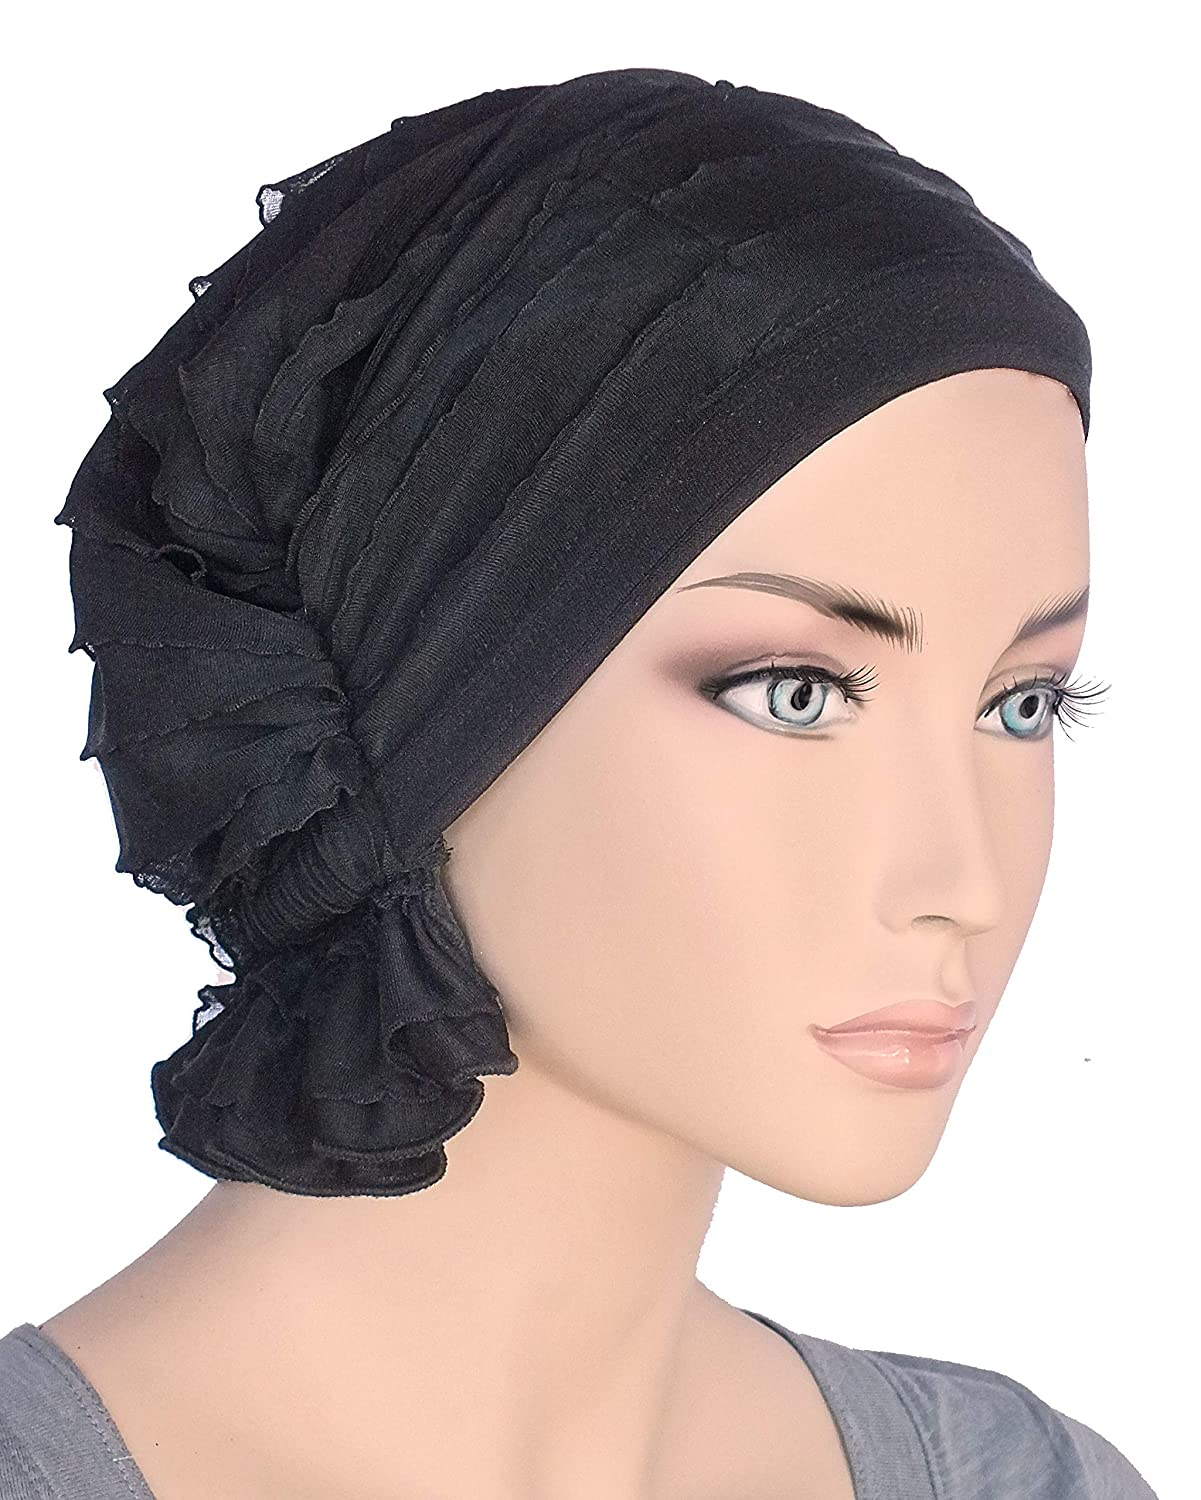 Turban Plus The Abbey Cap in Ruffle Fabric Chemo Caps Cancer Hats for Women ABY-419